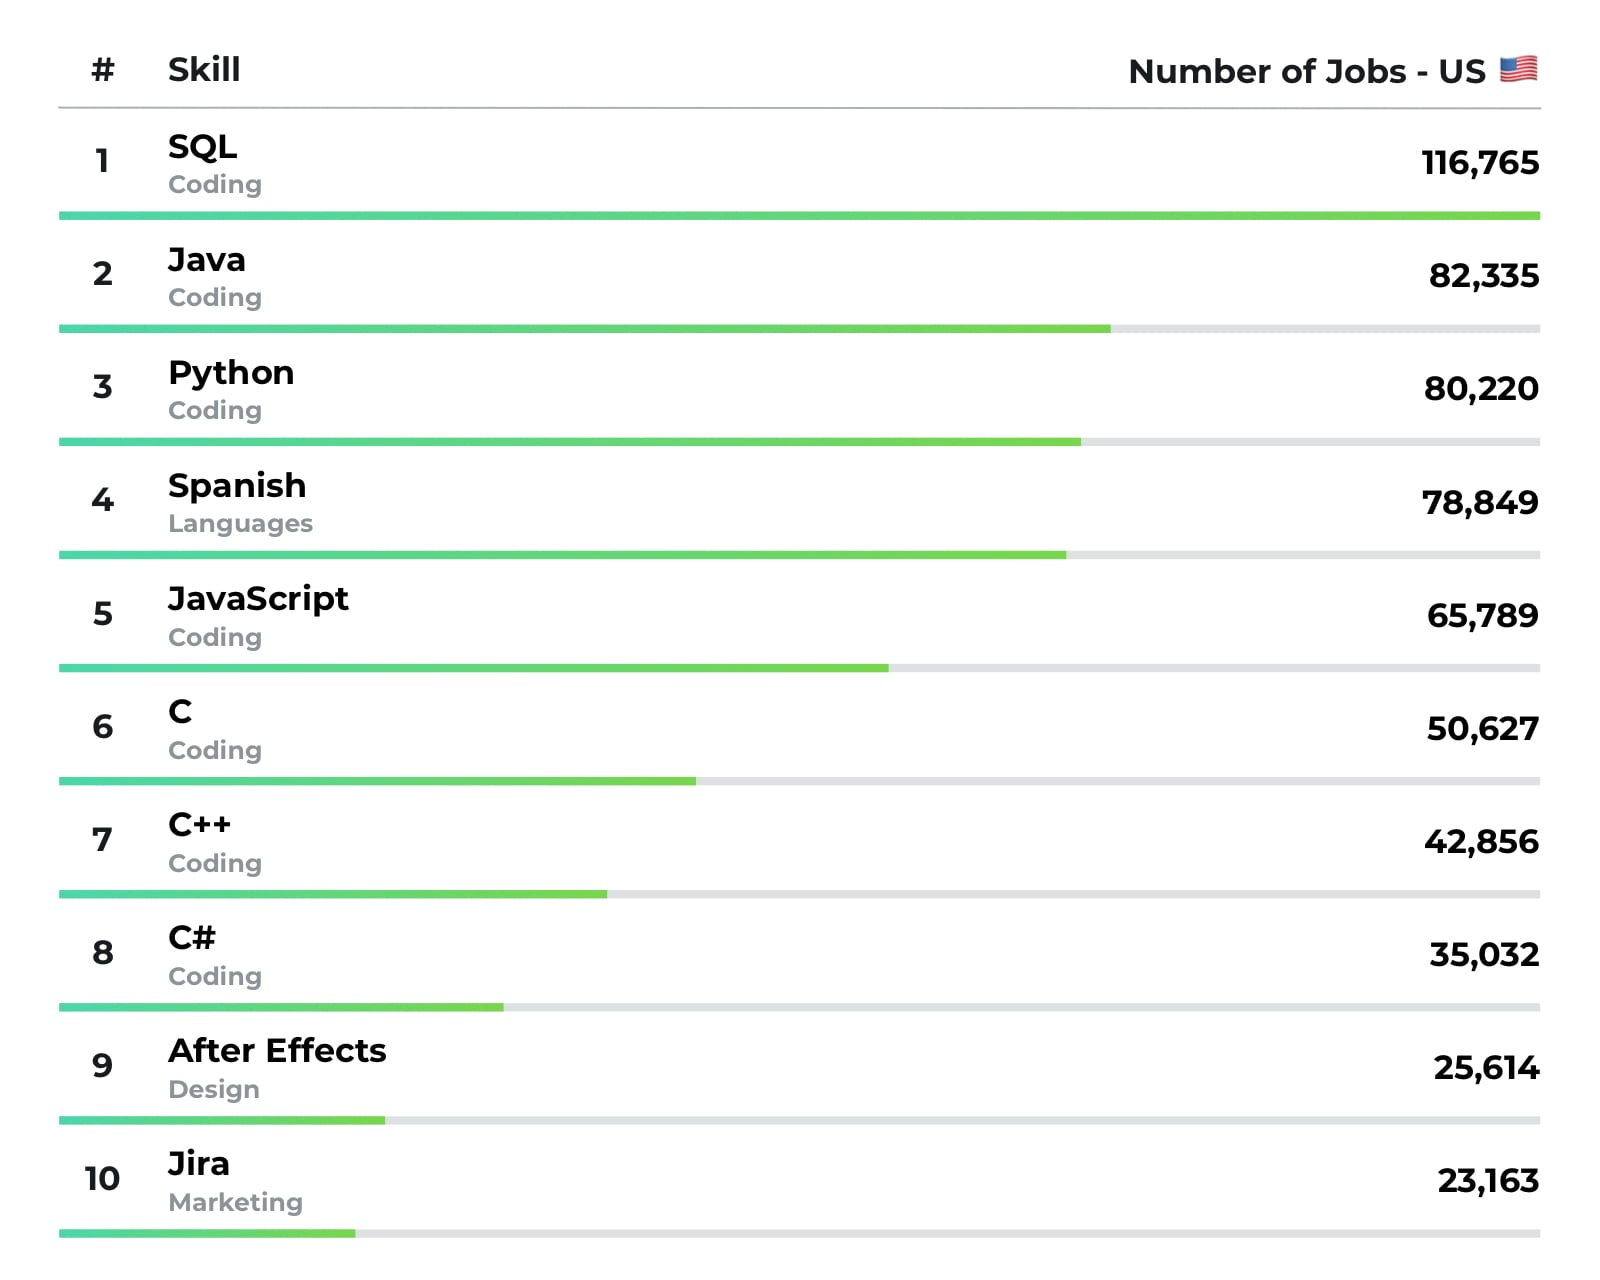 Infographic showing the most in-demand skills in the US.